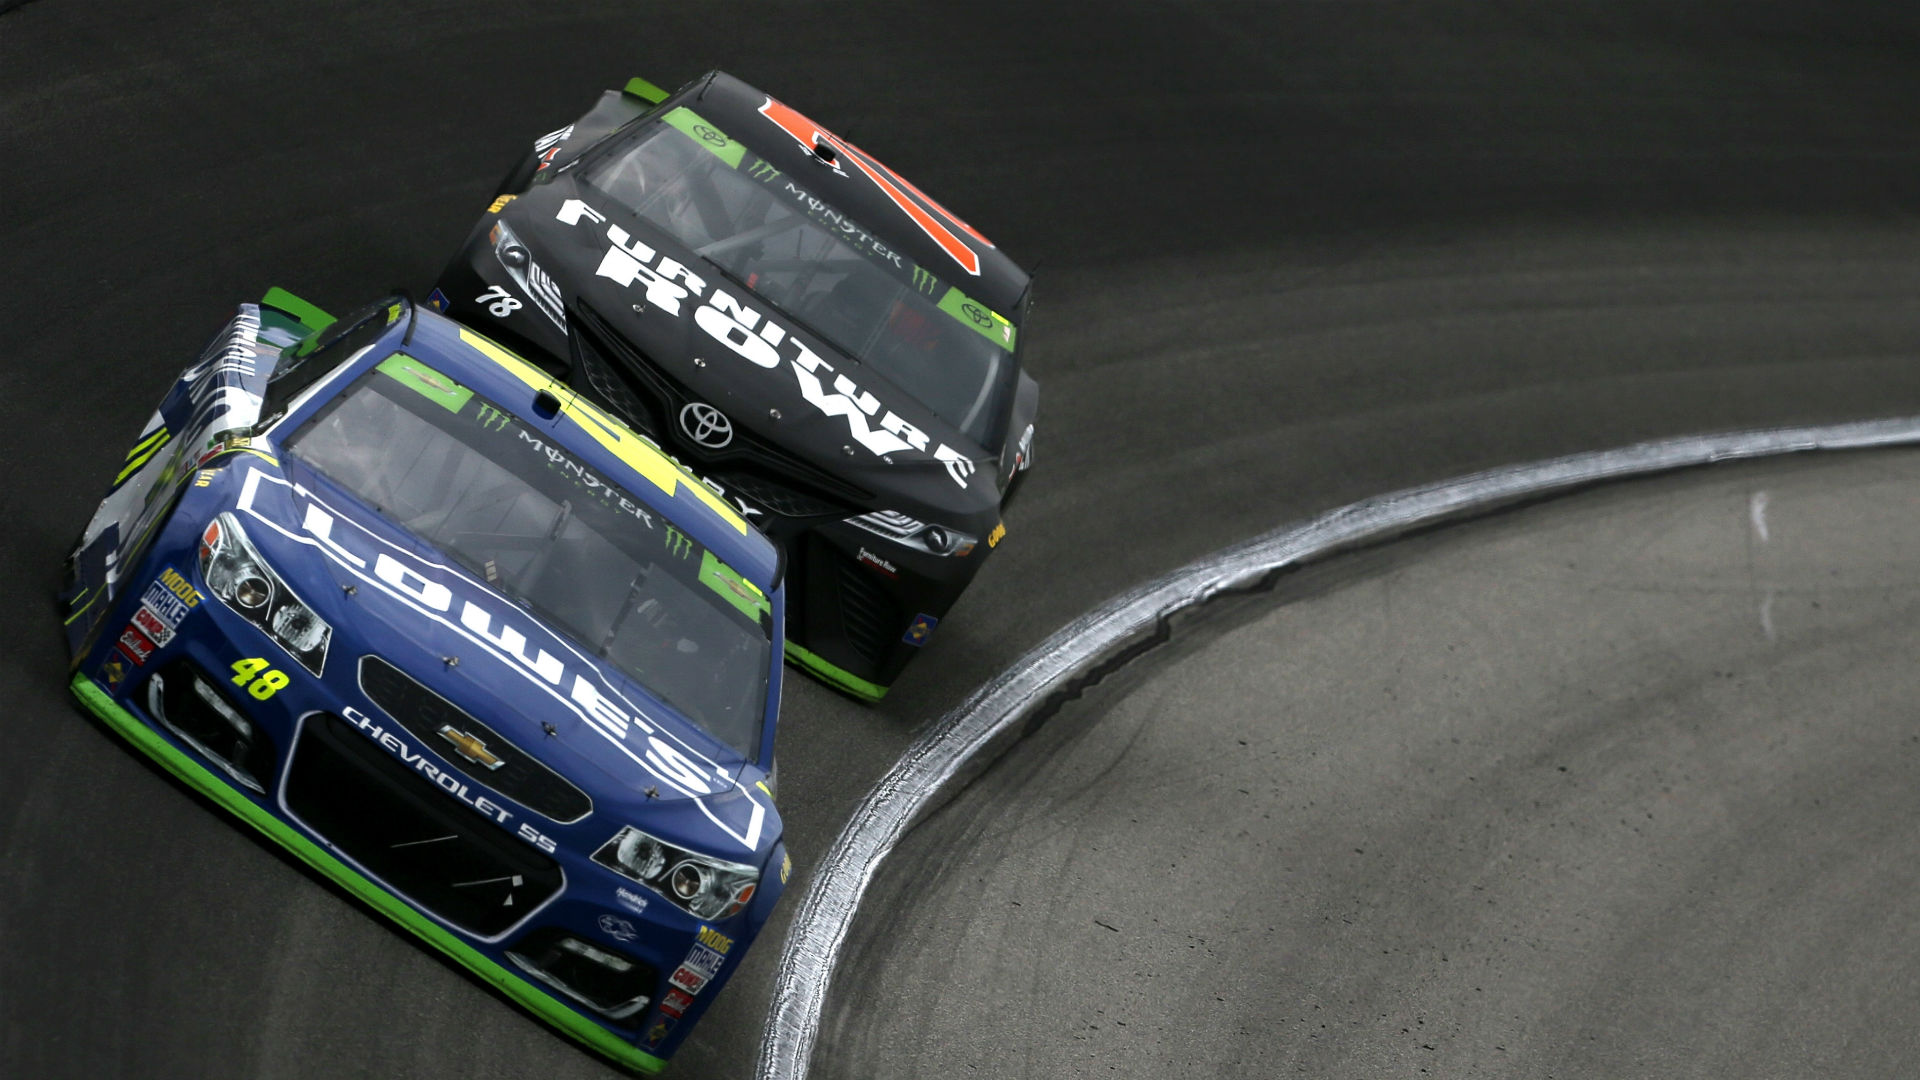 NASCAR at Texas: Odds, key stats, prediction, sleepers, fantasy drivers to draft